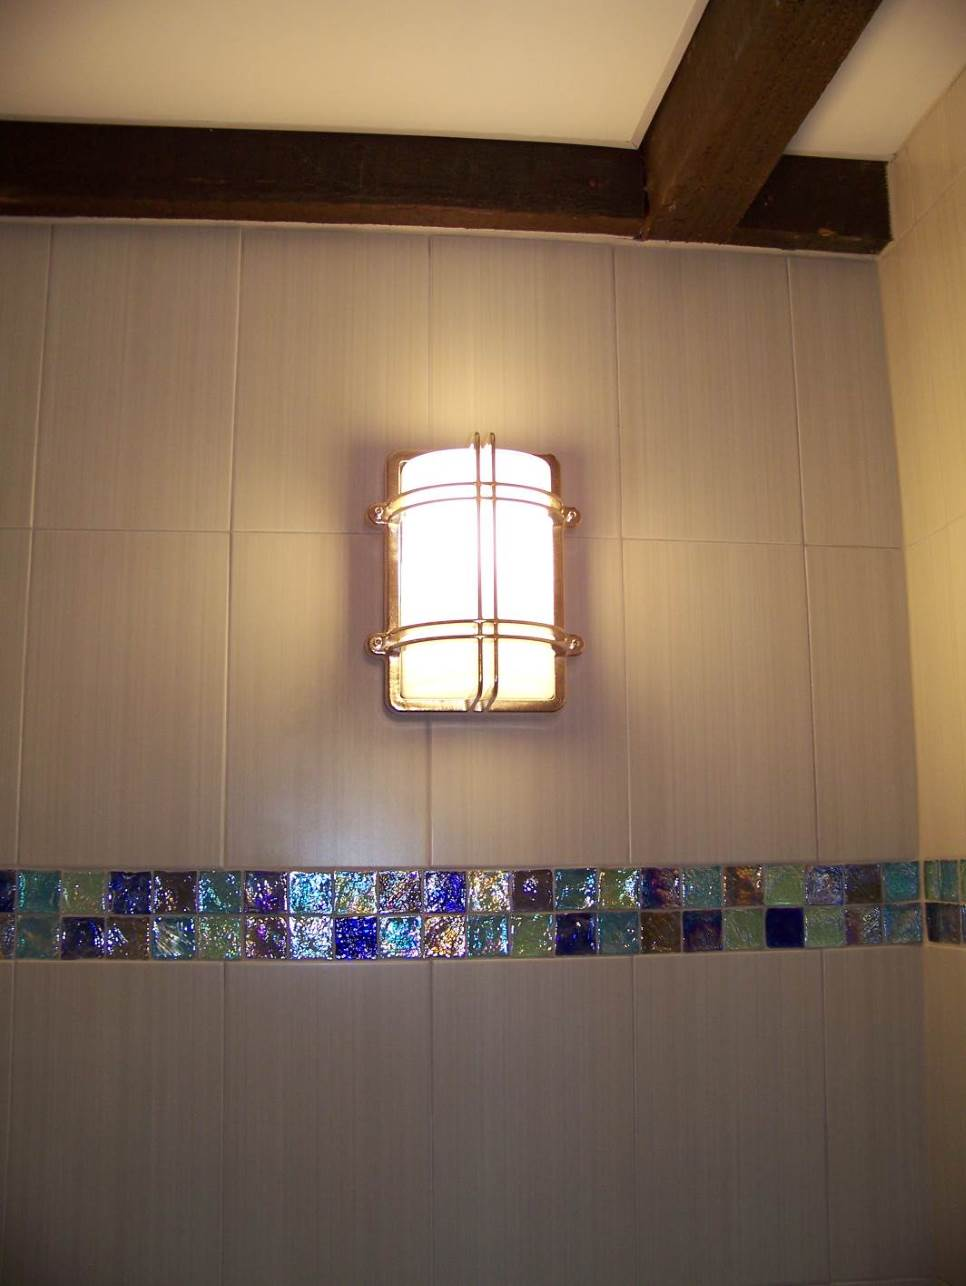 Beams,Tile and Lighting